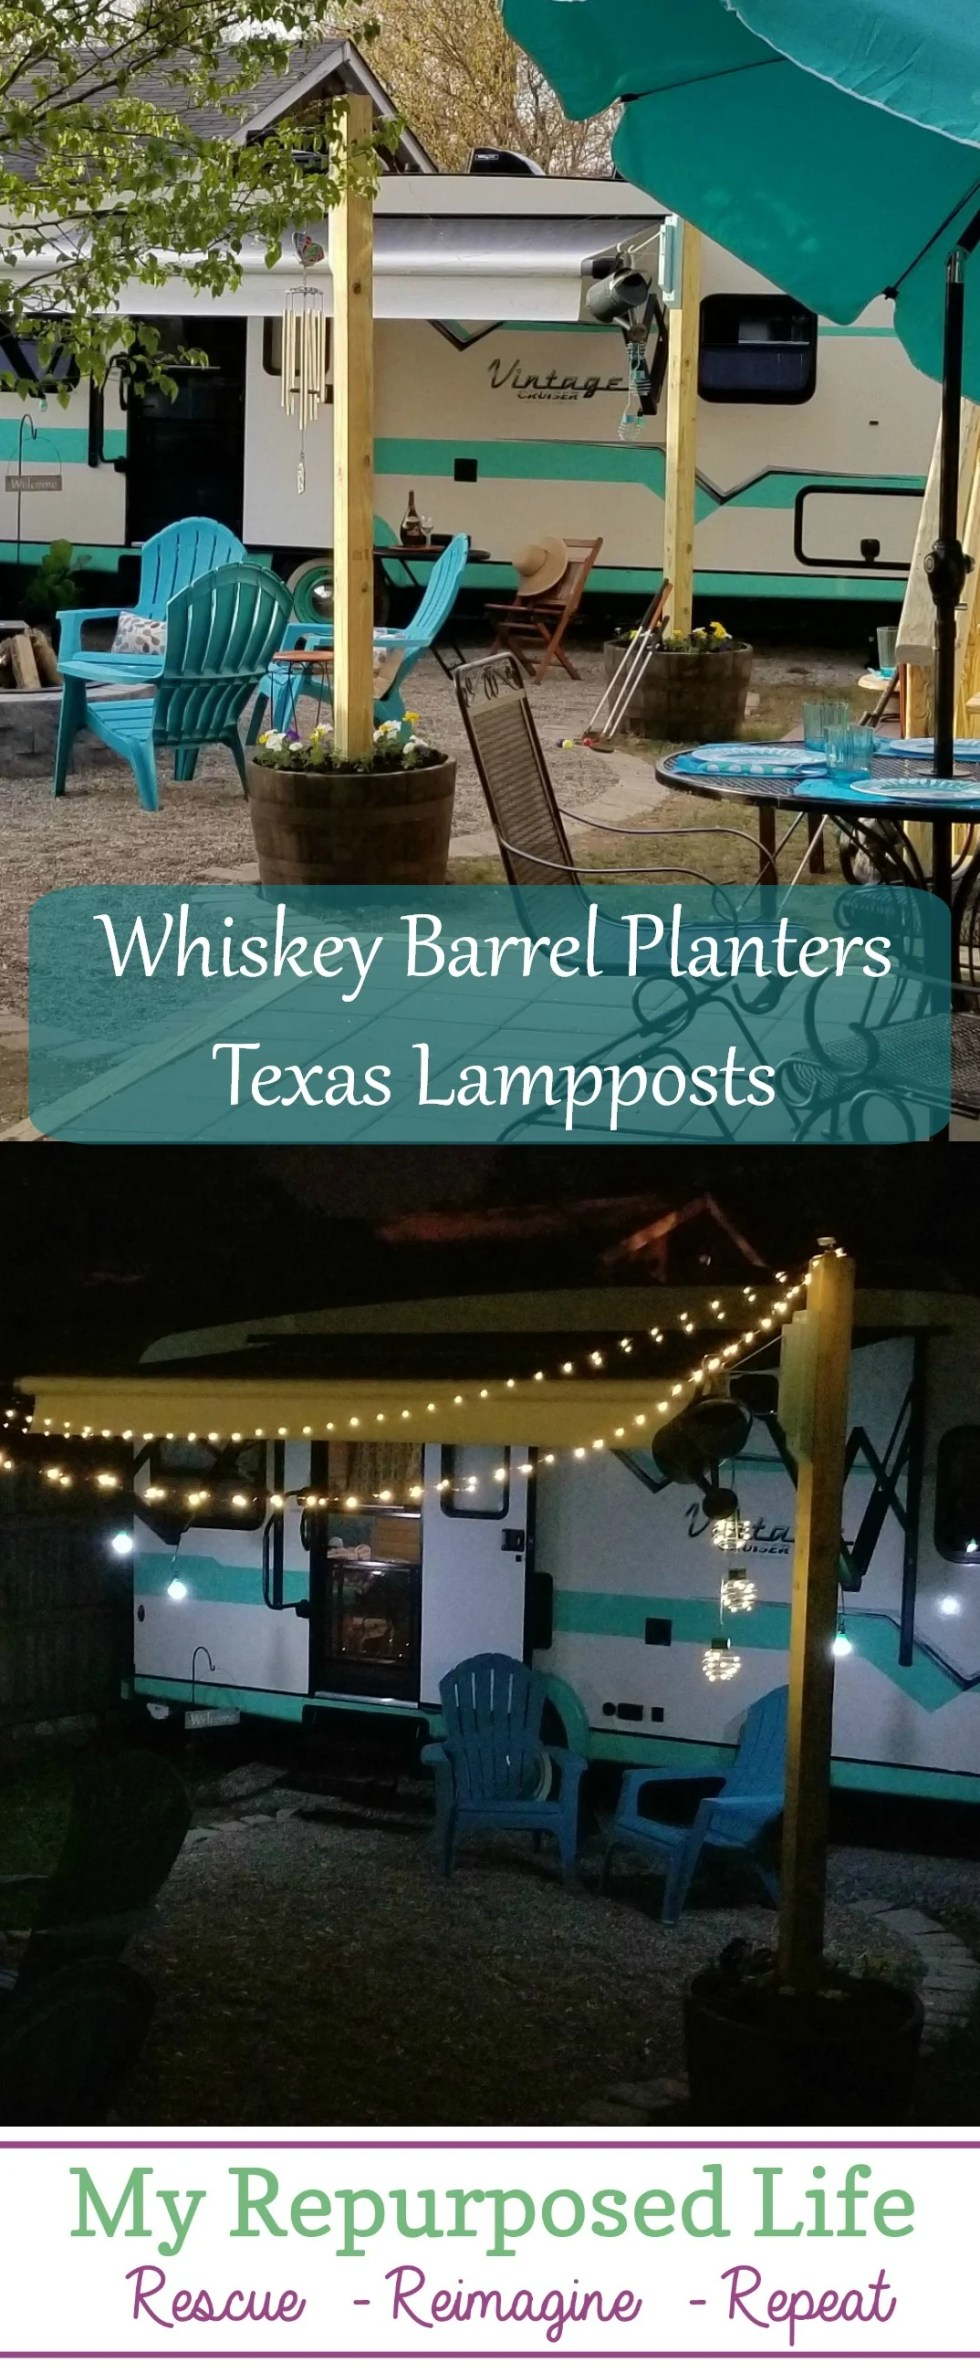 Whiskey Barrel Light Post |Tiny Solar Lights Tips for securing 4x4's in a whiskey barrel, with the cutest solar lights! No electricity needed! #texaslamppost #myrepurposedlife #outdoor #living #lighting #solar #camper #backyard via @repurposedlife